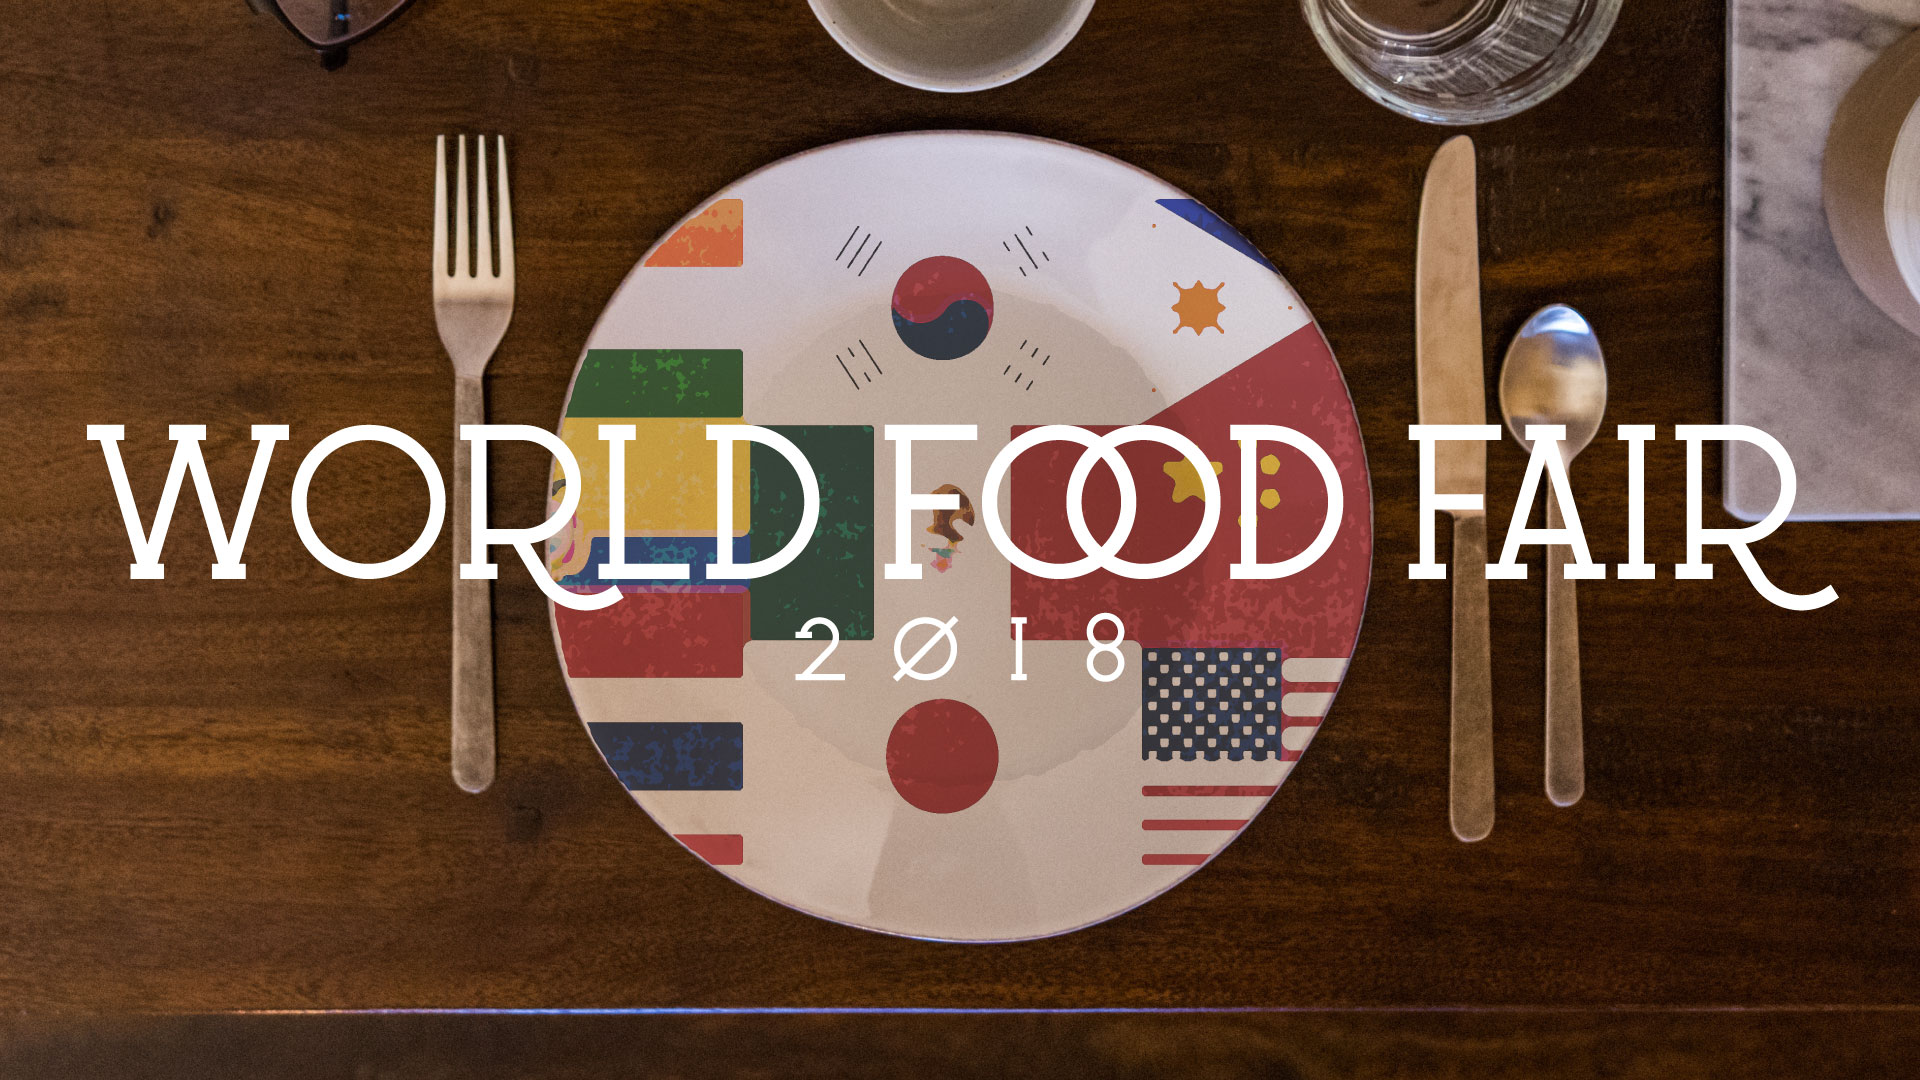 World Food Fair